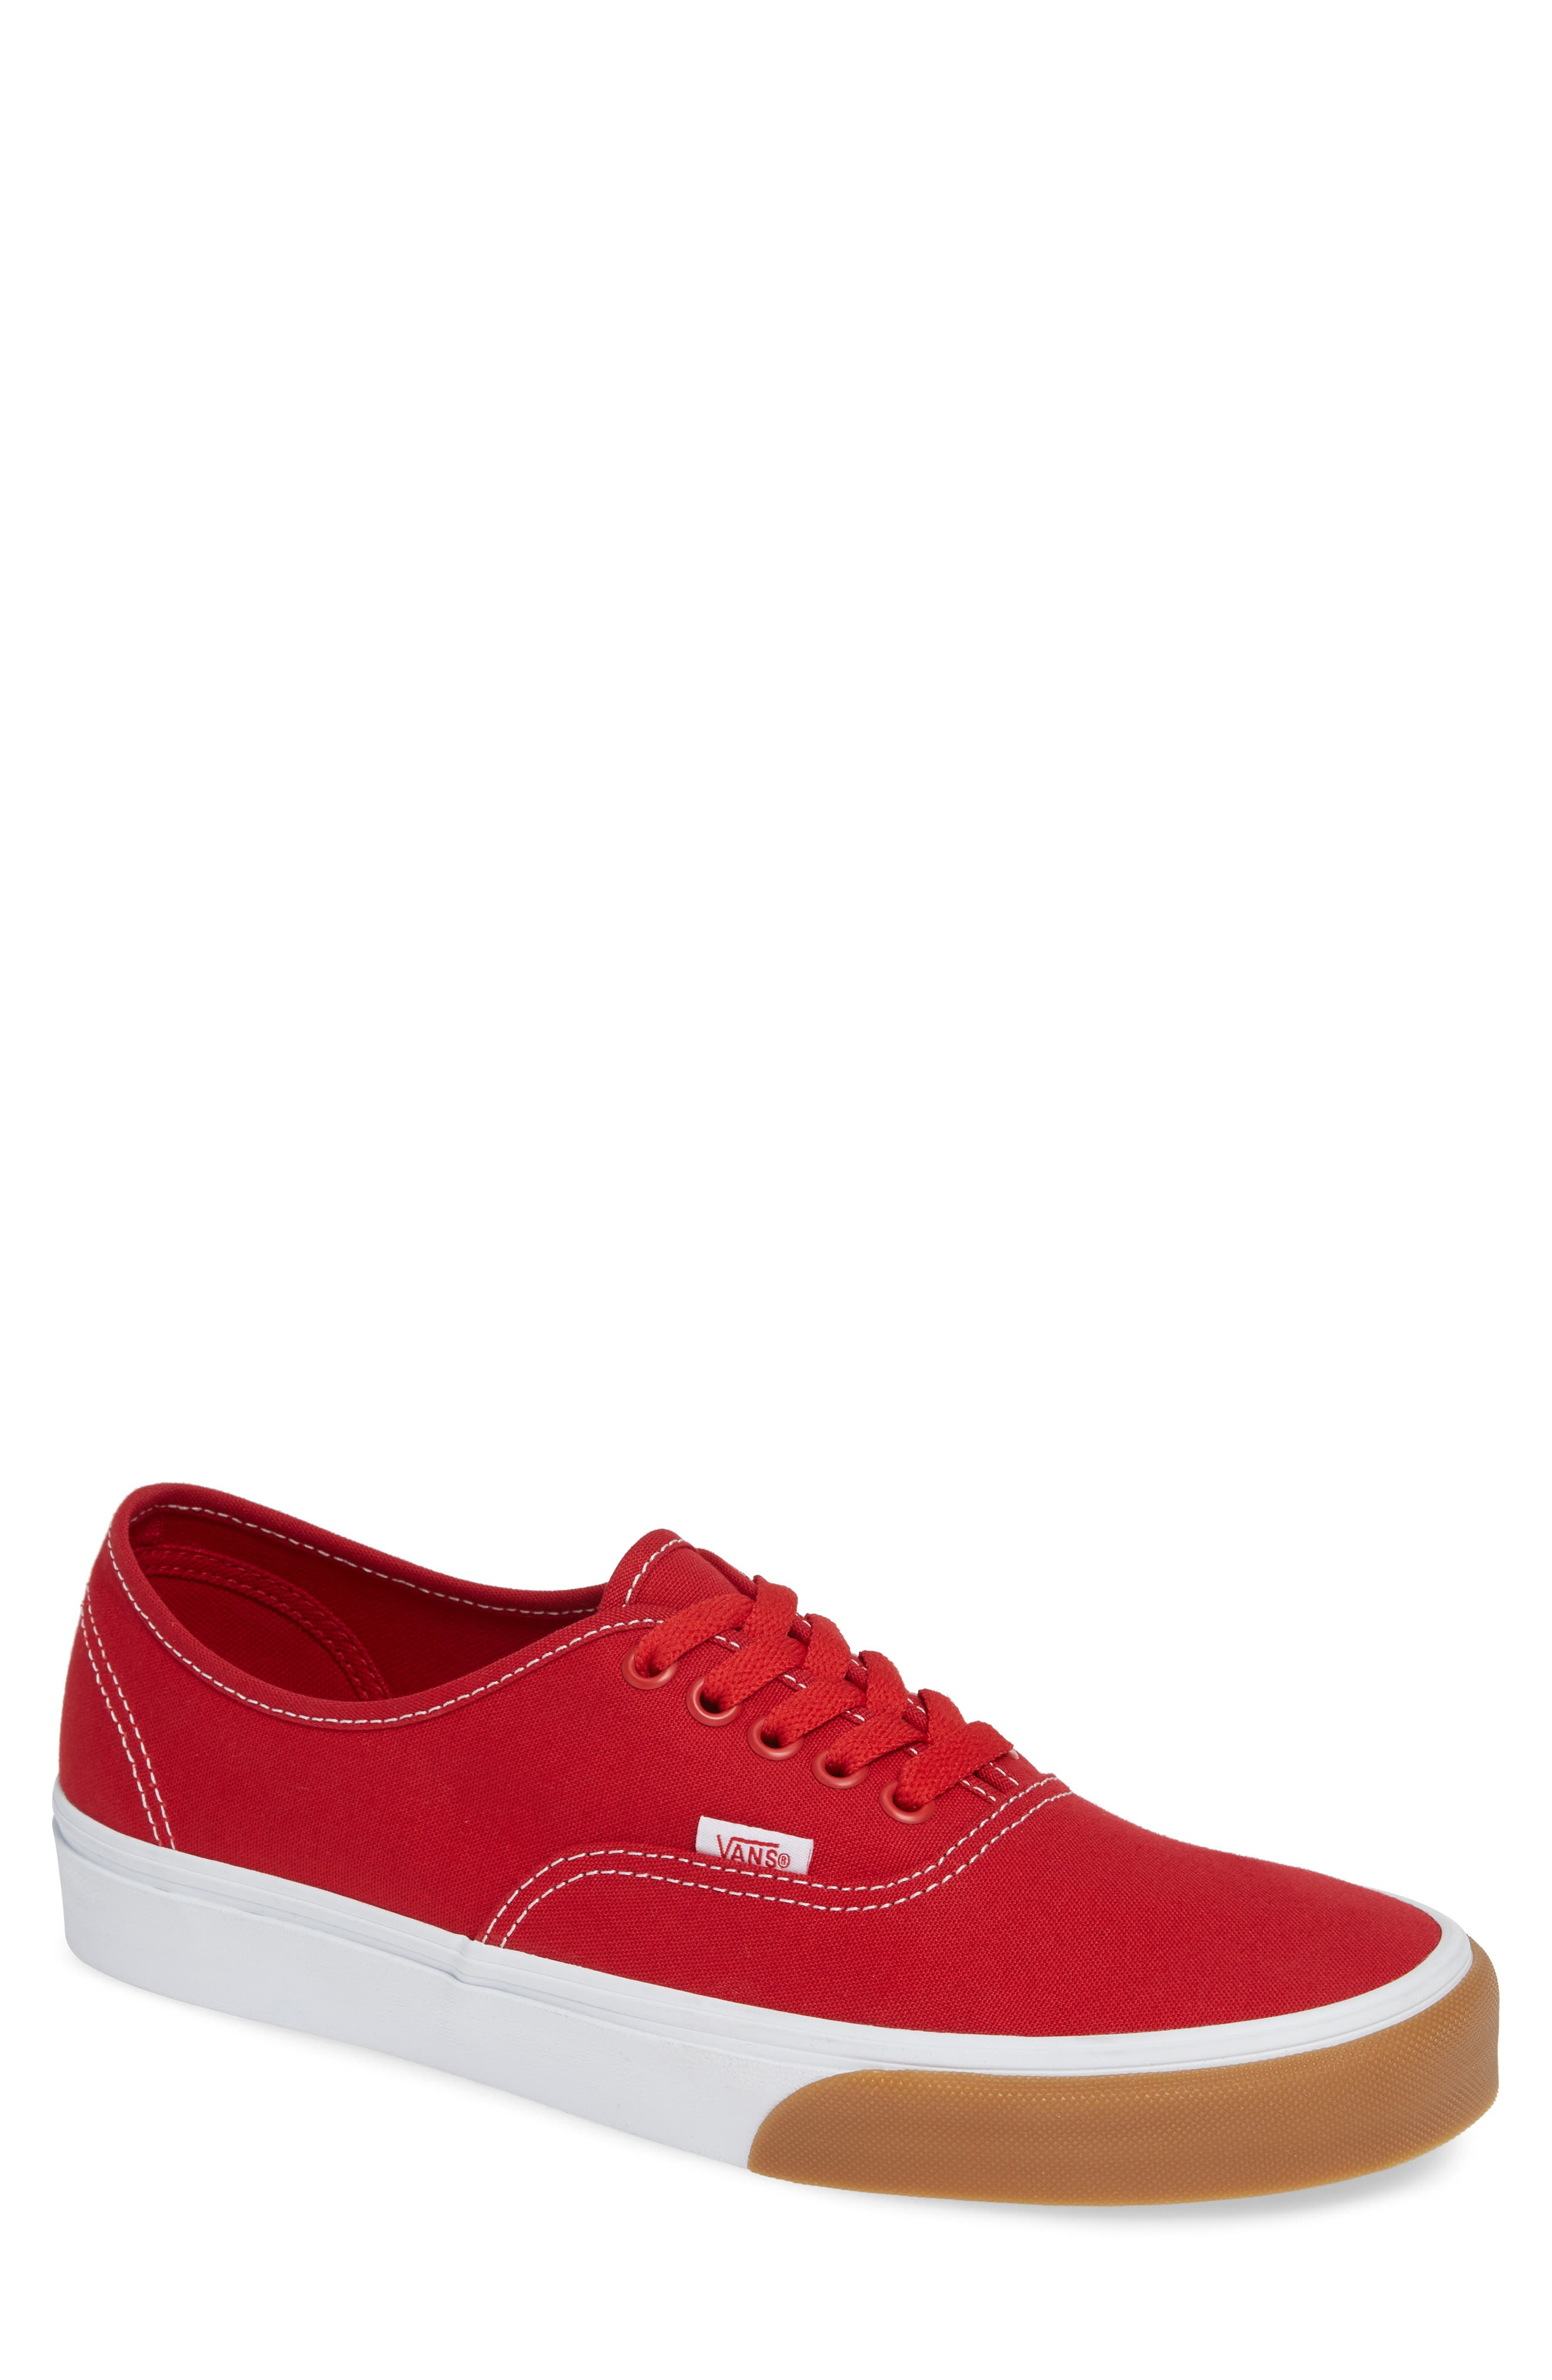 VANS Authentic Gum Bumper Sneaker, Main, color, RED/ TRUE WHITE